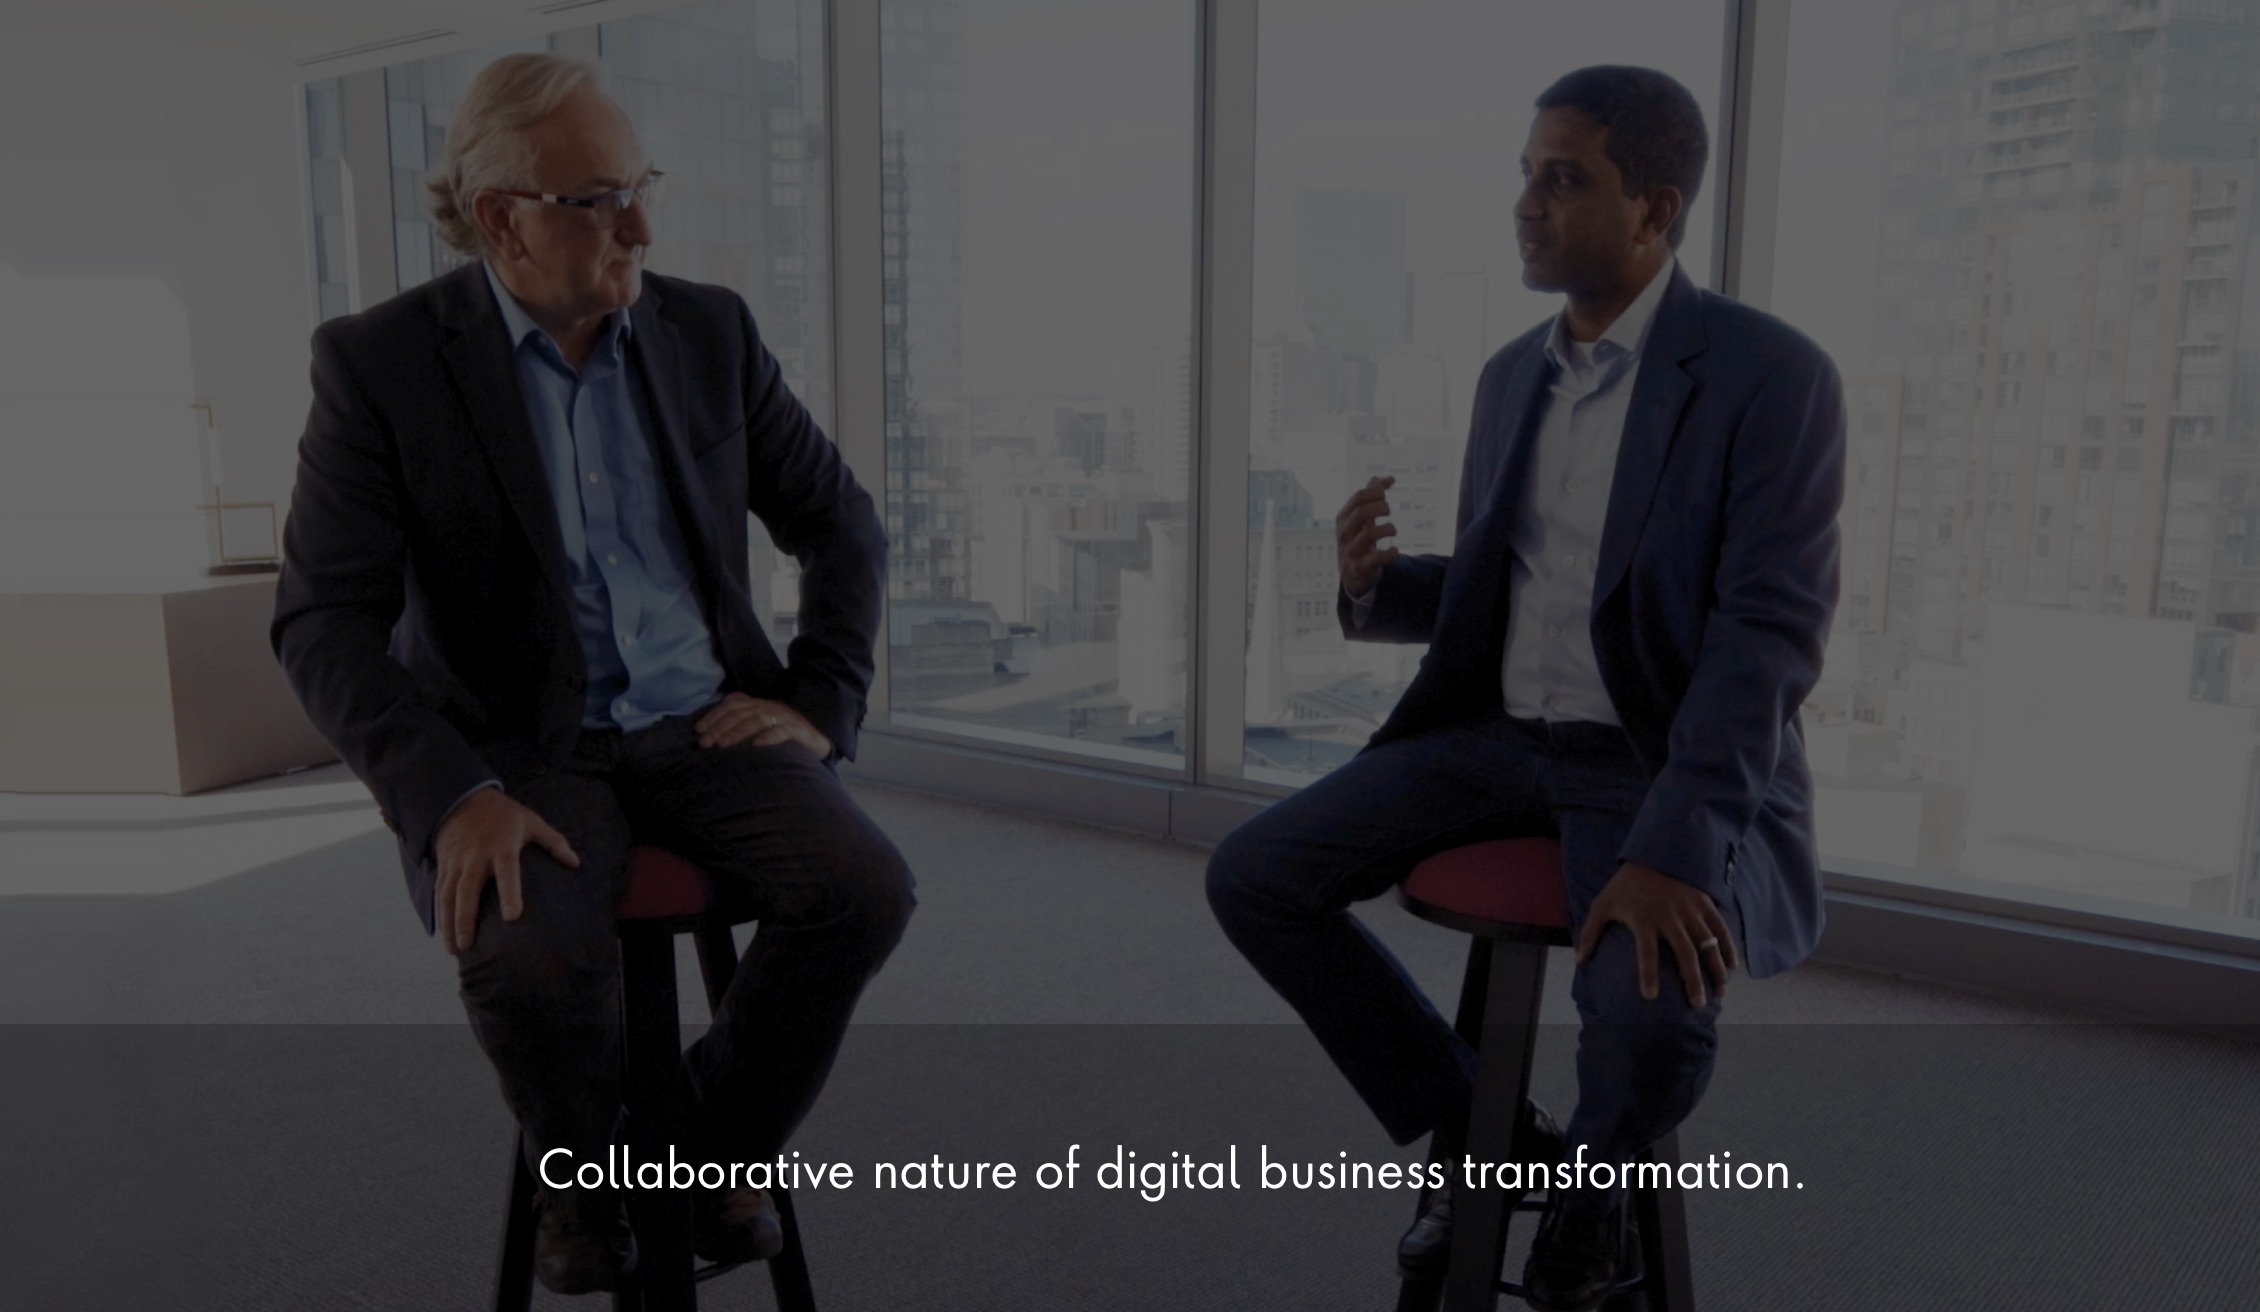 Collaborative nature of digital business transformation.